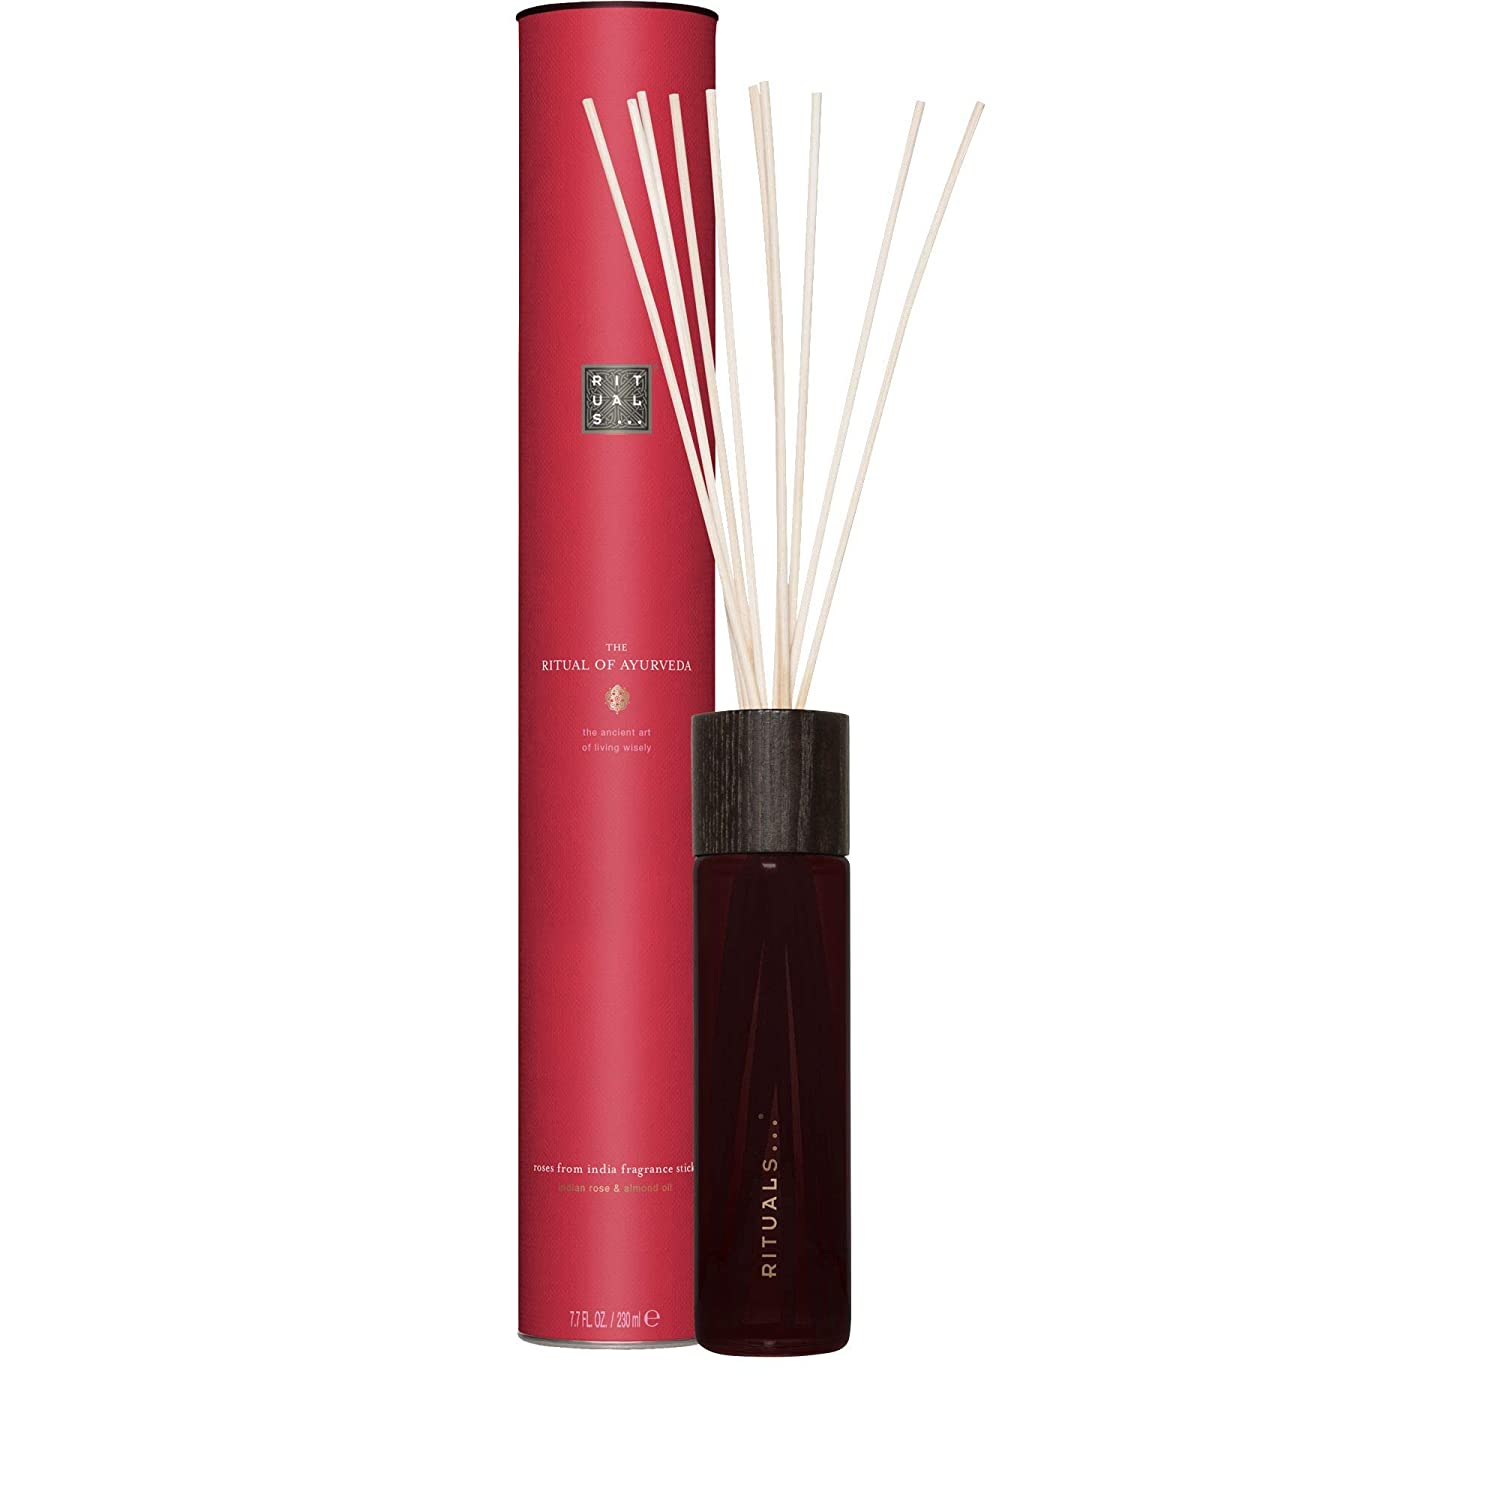 RITUALS The Rituals of Ayurveda Large Fragrance Sticks, 7.7 Fl oz